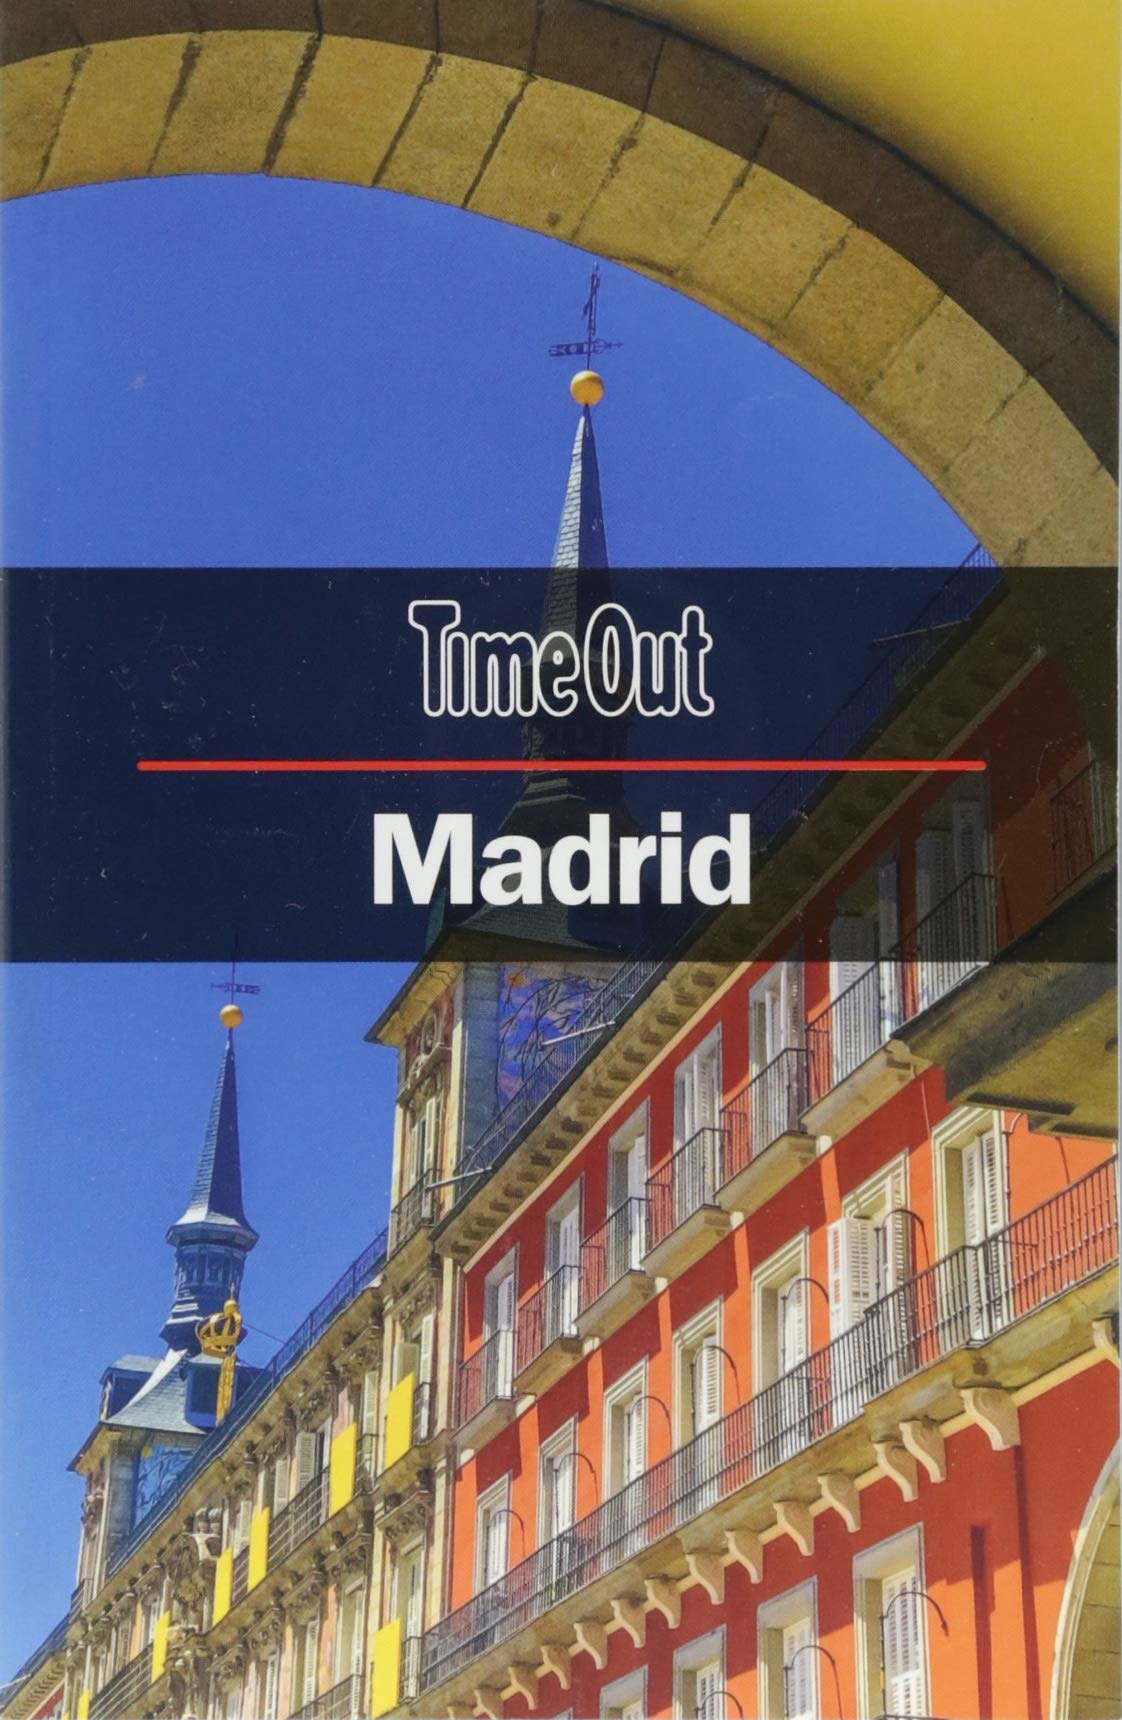 Time Out Madrid City Guide (Time Out City Guide): Time Out: 9781780592626: Amazon.com: Books